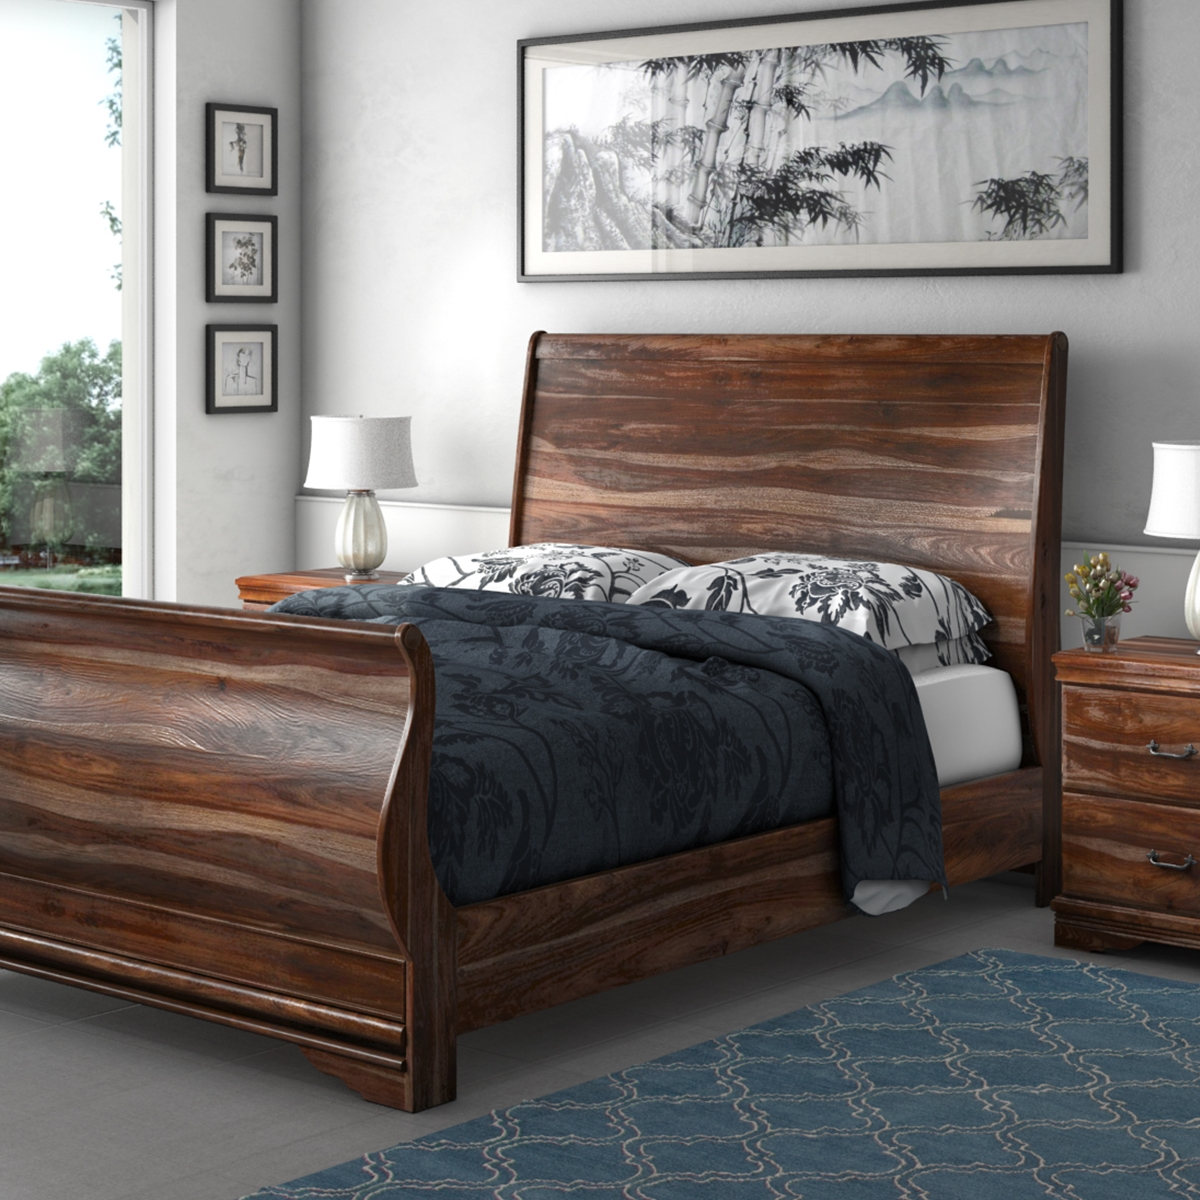 Introducing New Solid Wood Bed Collection At Sierra Living